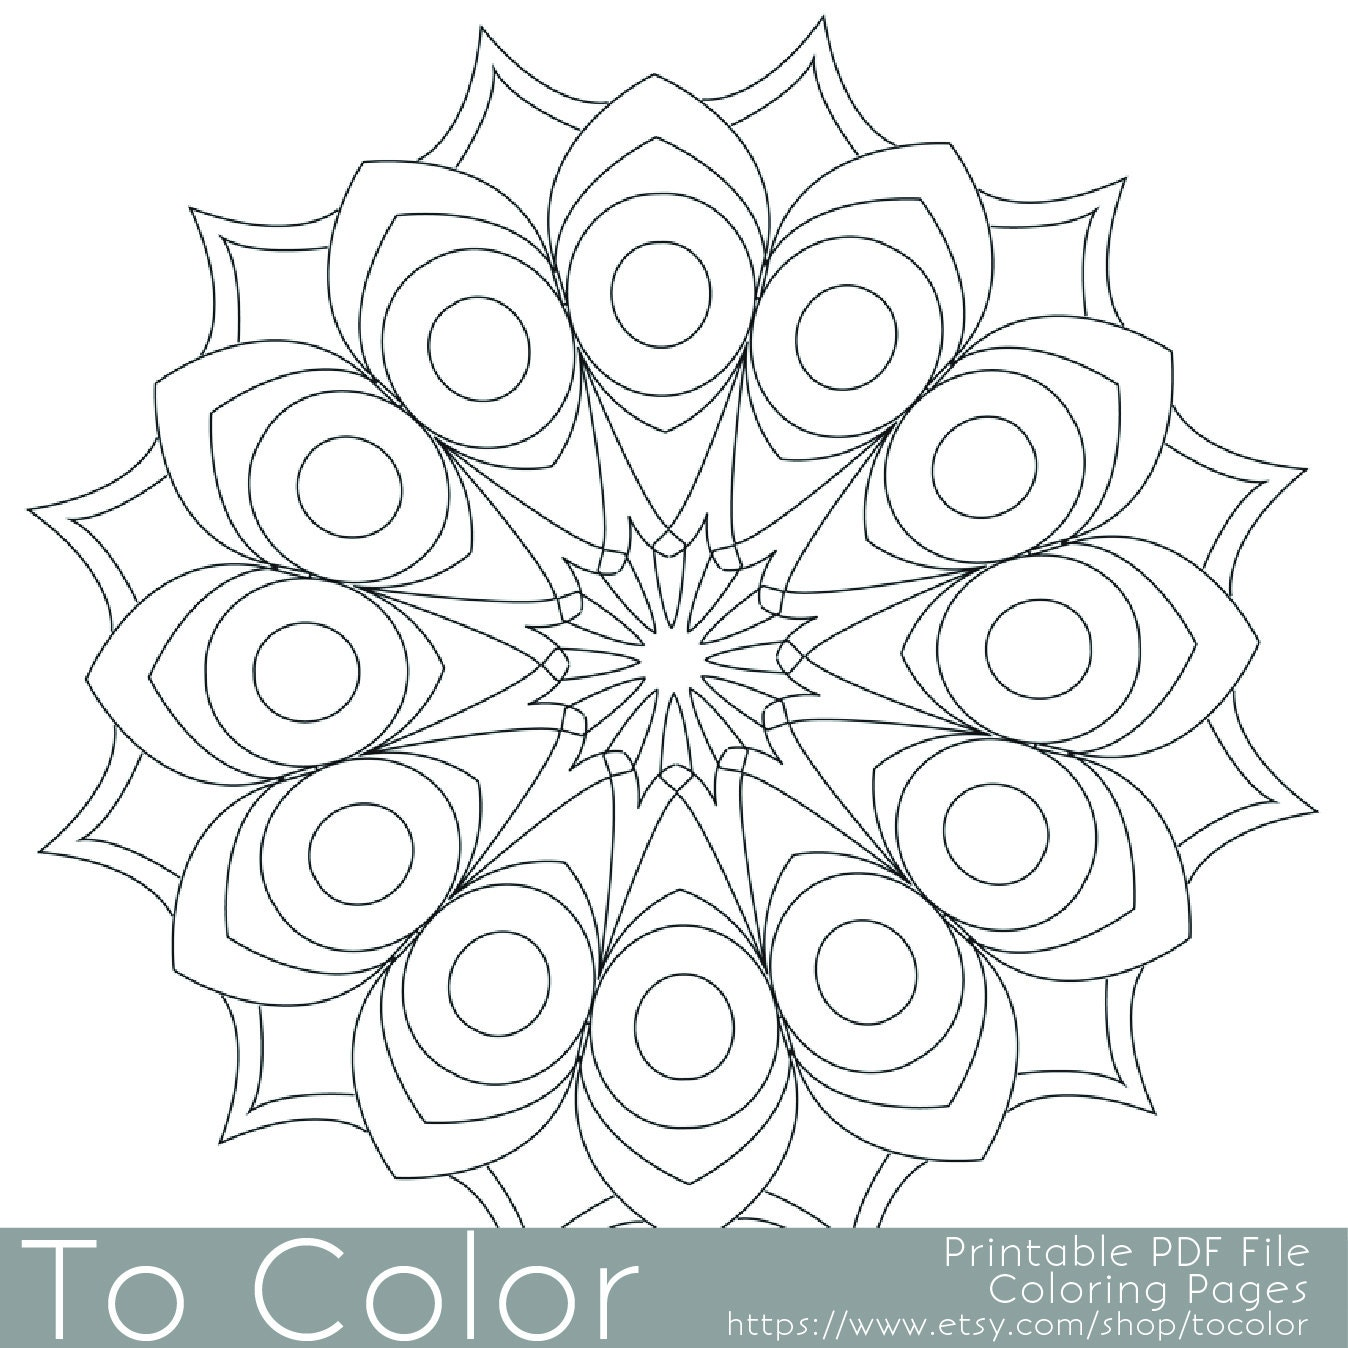 Coloring Pages For Adults: Printable Circular Mandala Easy Coloring Pages For Adults Big